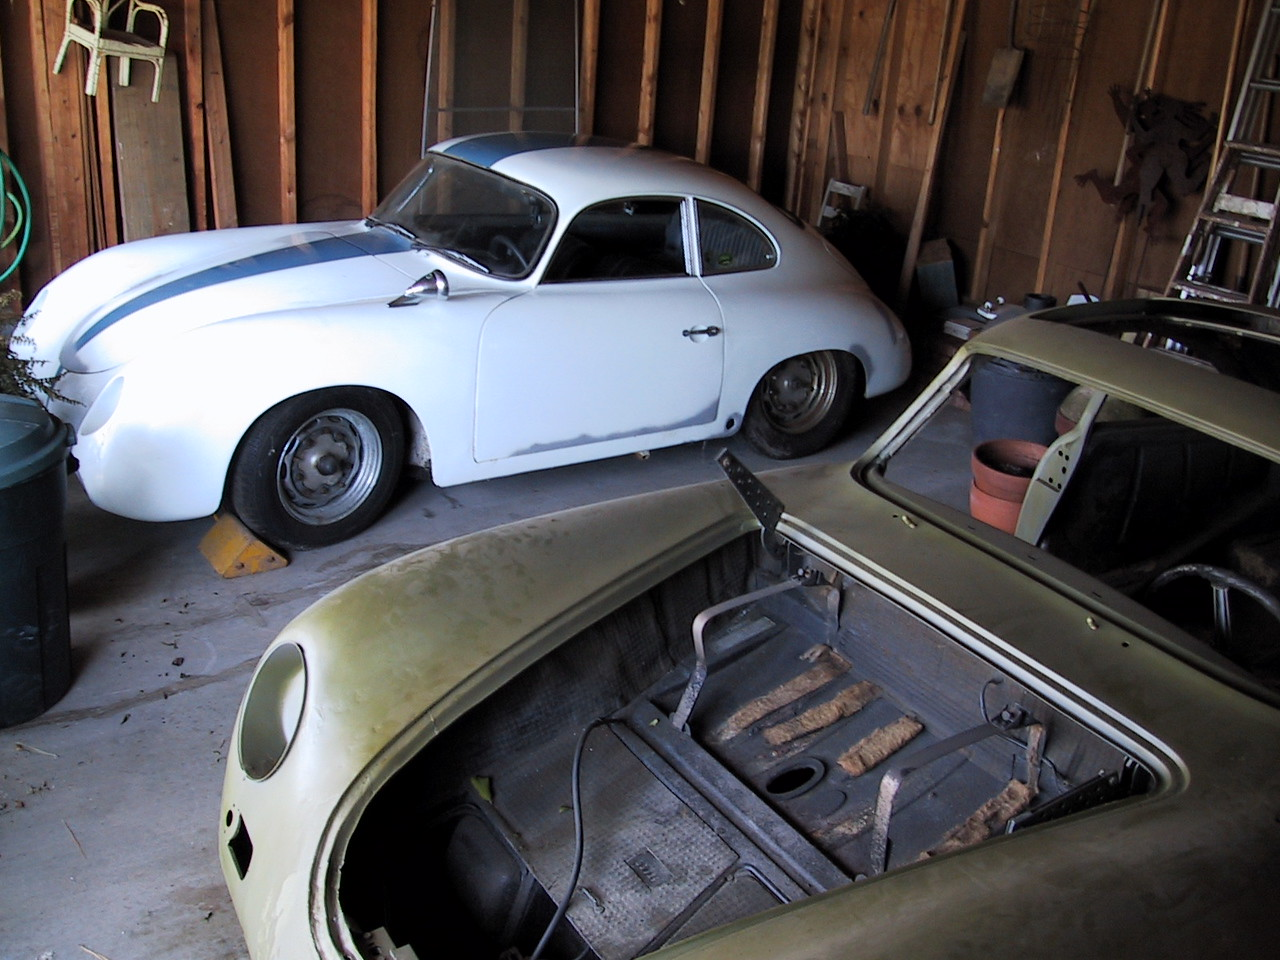 This shot was taken shortly before the second restoration started. The car in the foreground is a 1956 Sunroof Coupe 356 with a serial number 641 cars later than the Carrera. It was sold to help finance the restoration.